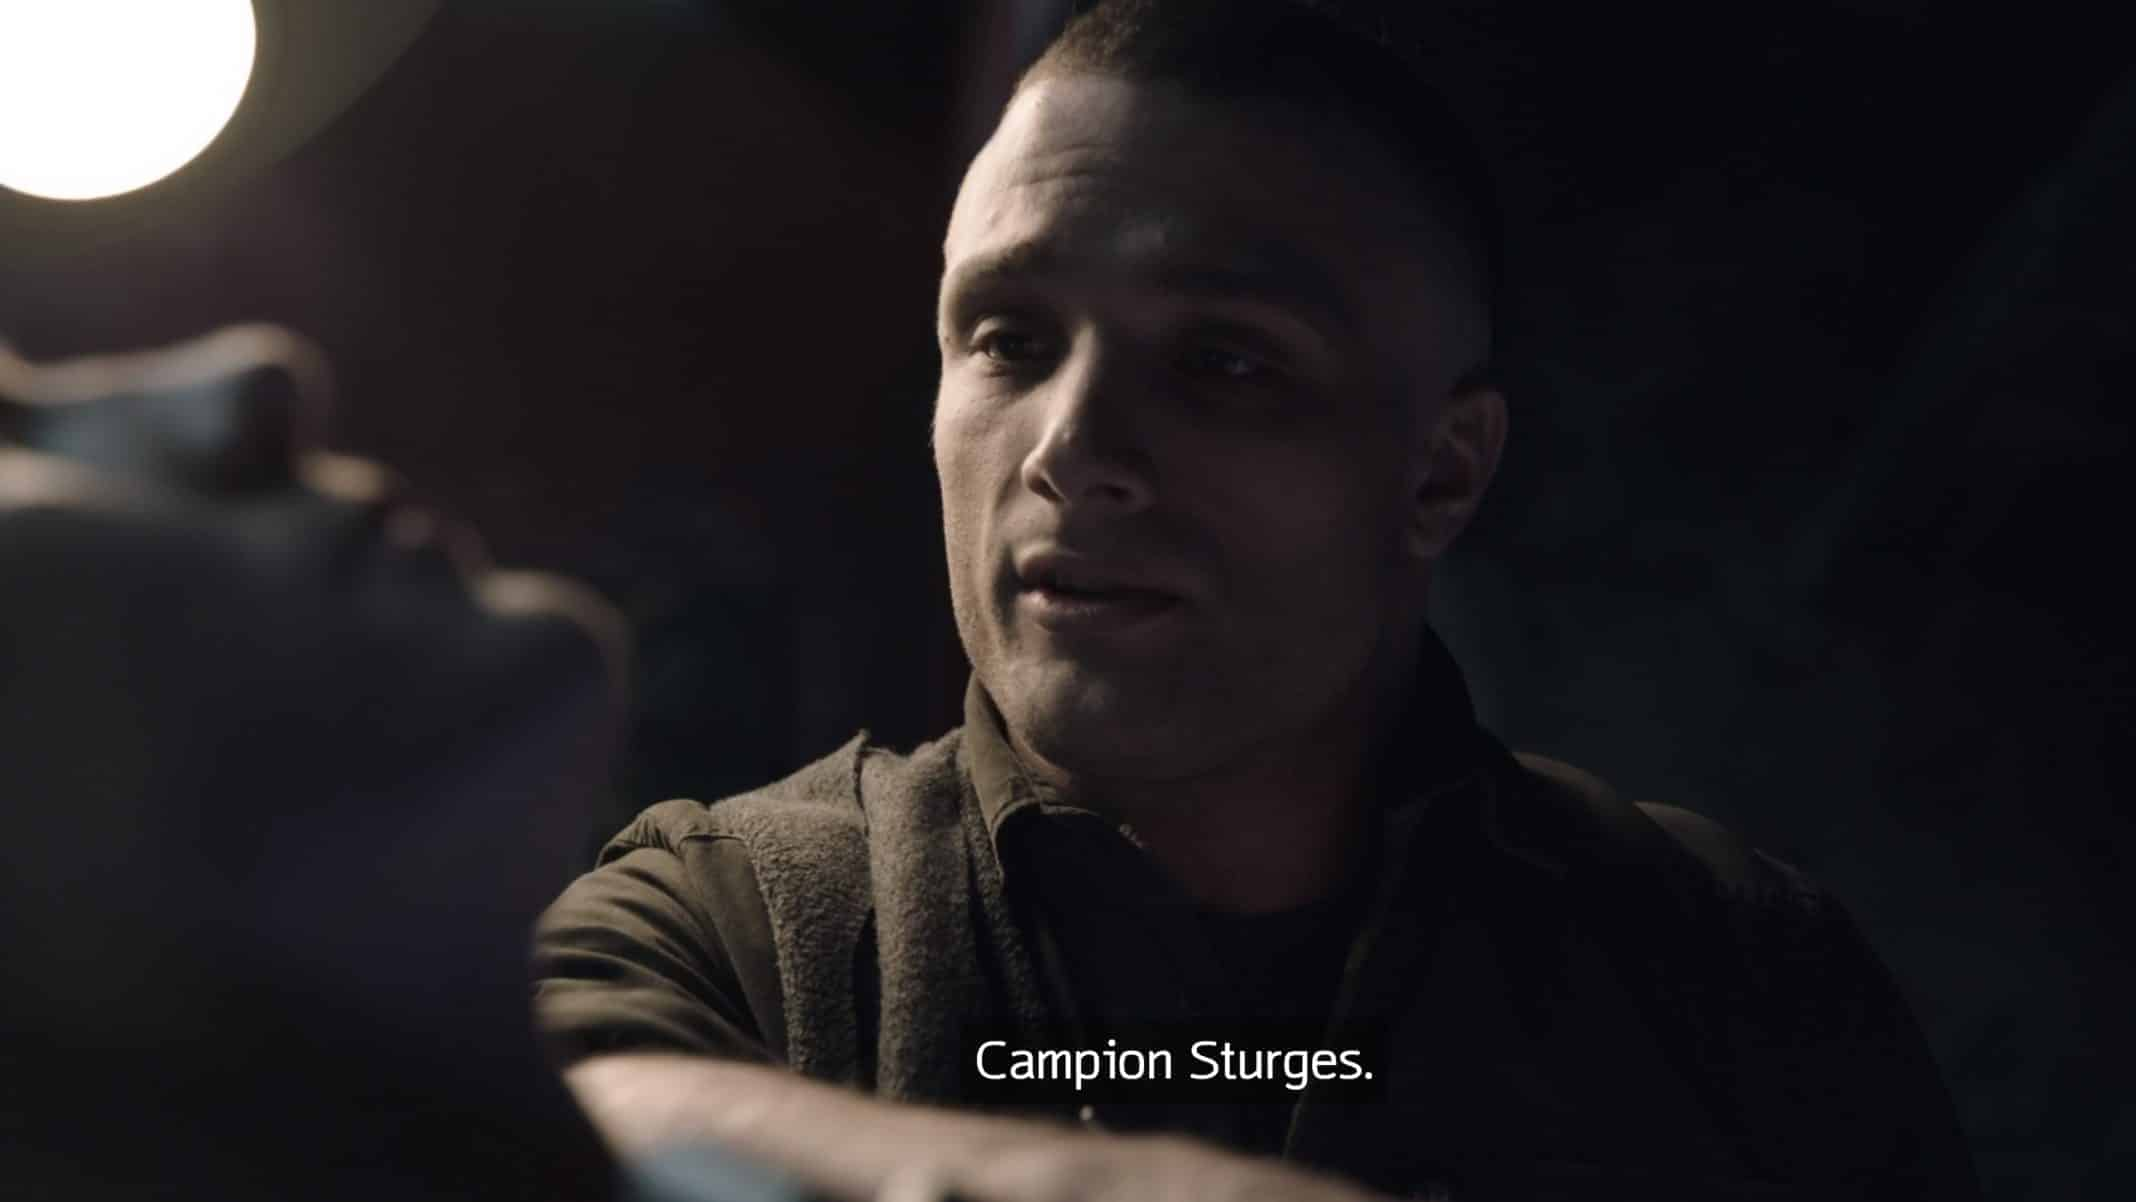 Campion Sturges (Cosmo Jarvis) telling Mother his name.